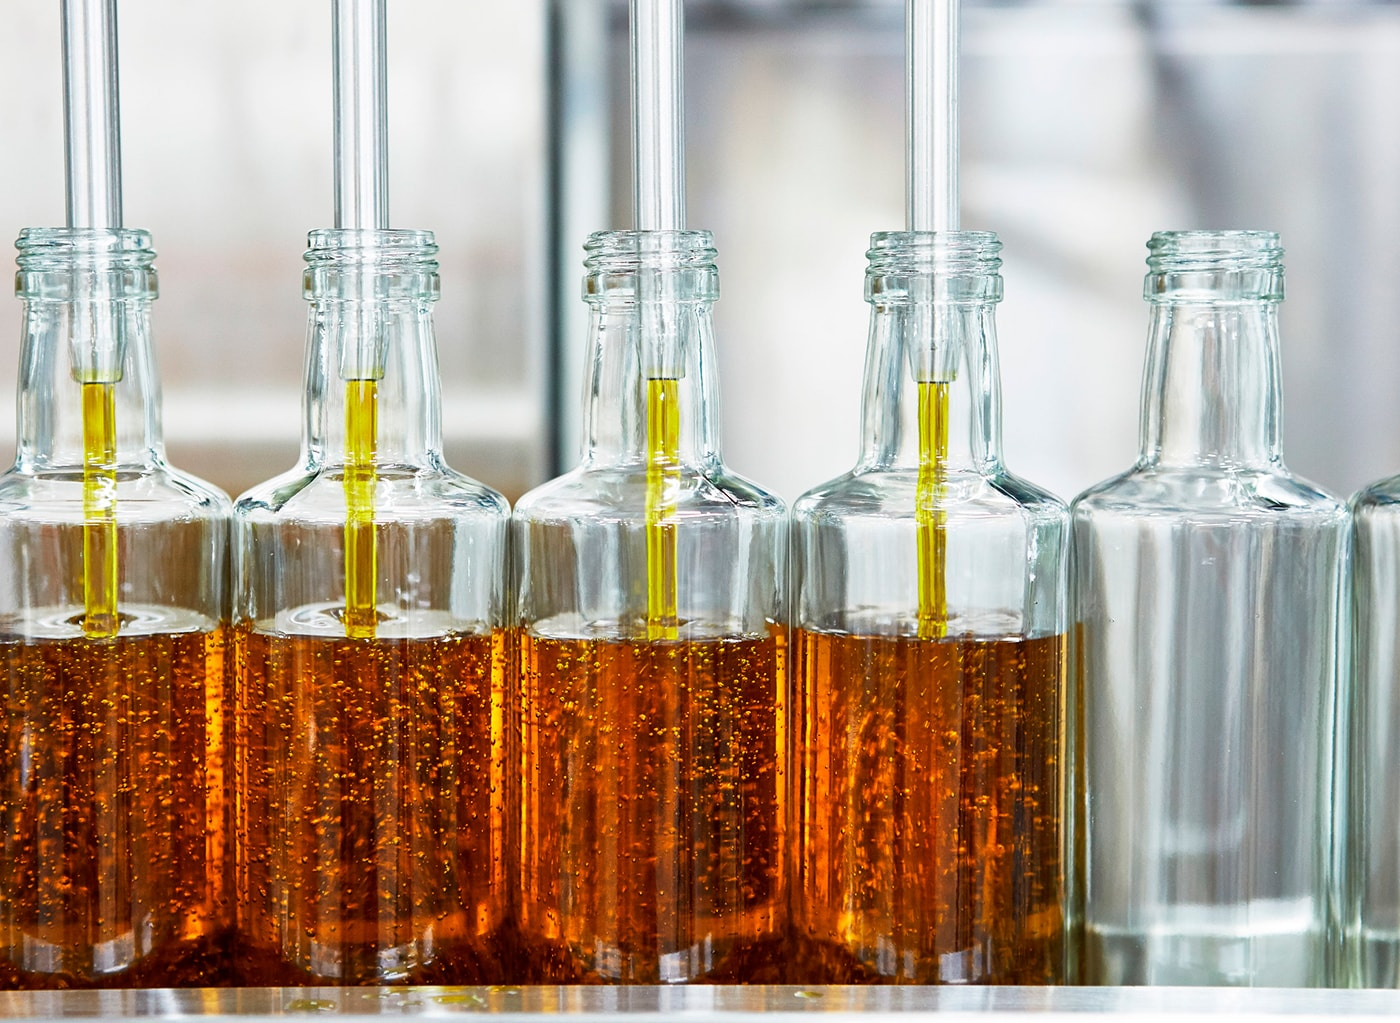 A lineup of glass bottle being filled at a factory with canola oil.